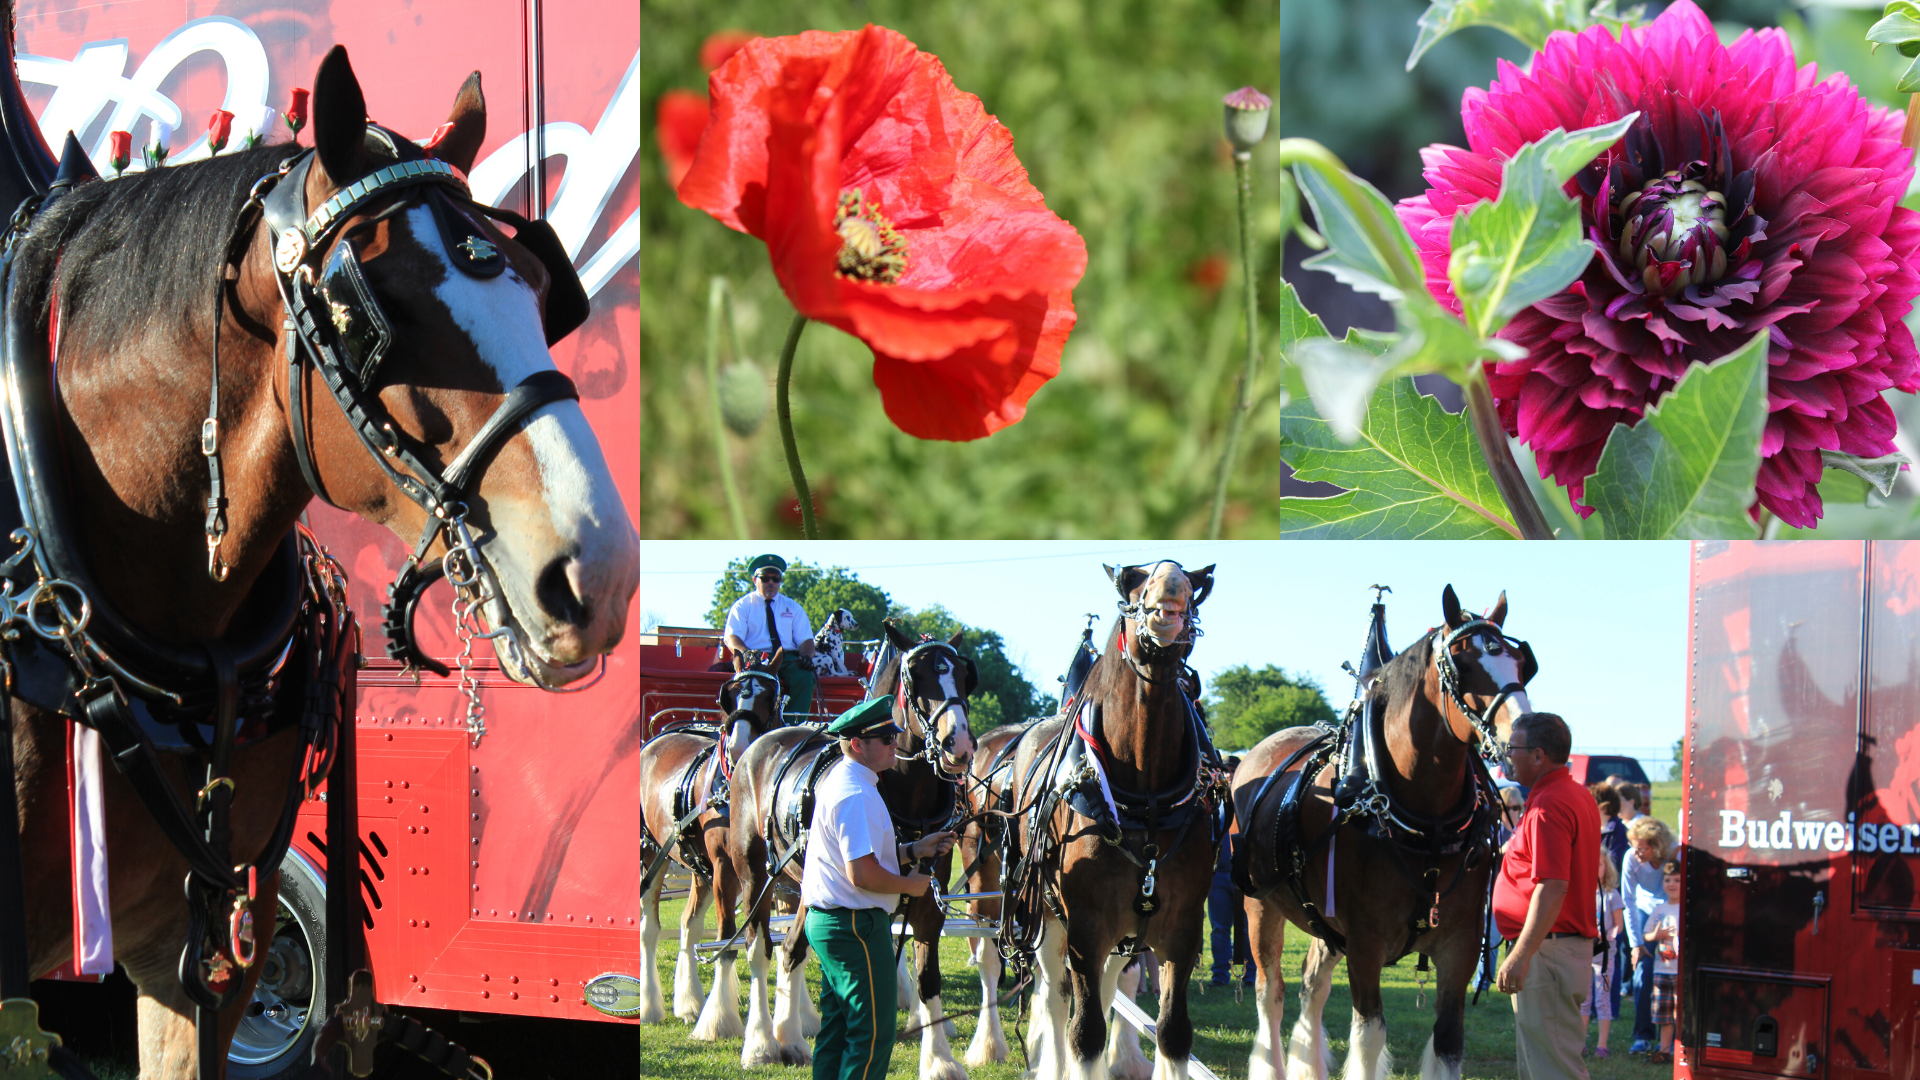 Collage pictures of flowers and horses